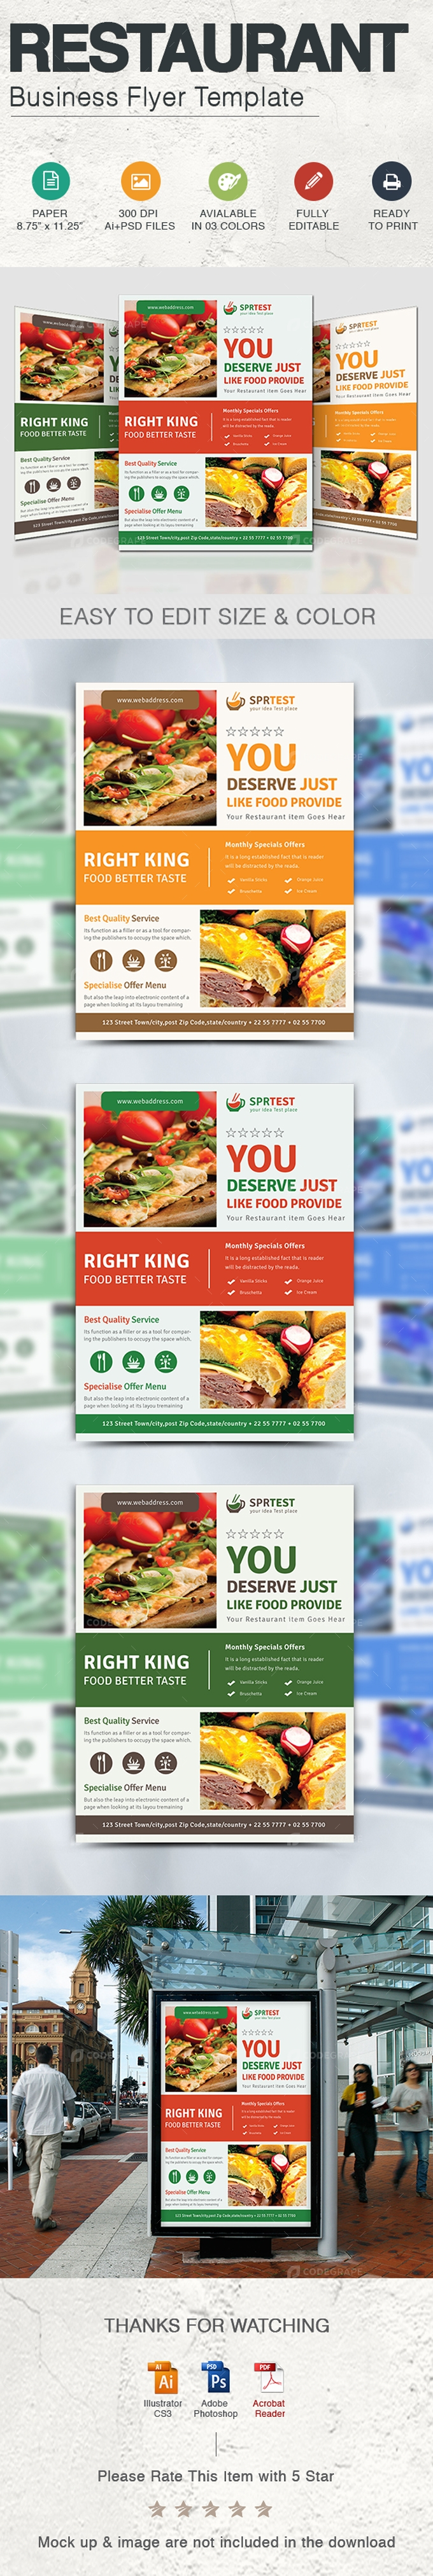 Restaurant Business Flyer